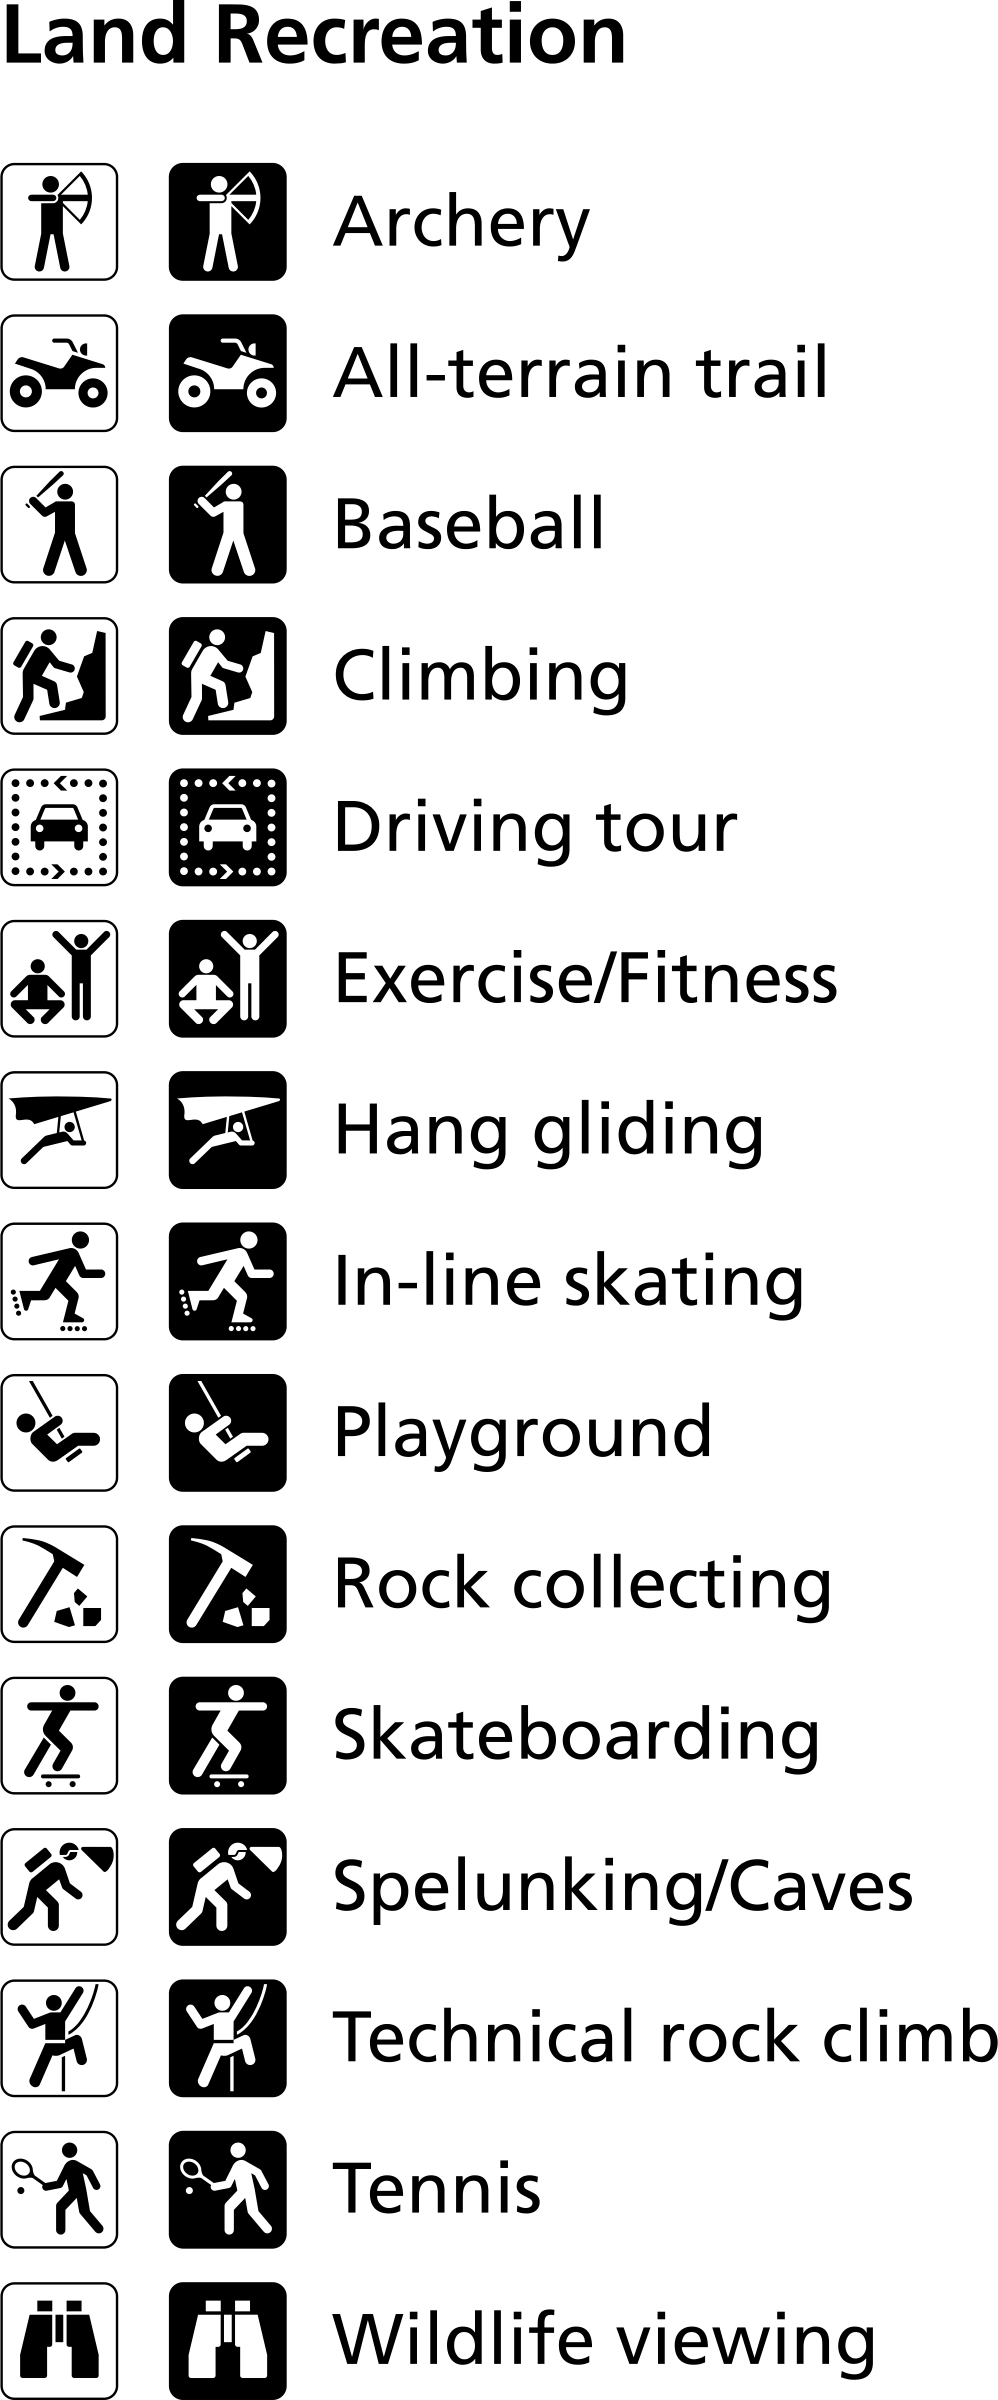 Baseball clipart font graphic freeuse Clipart - Land recreation symbols graphic freeuse